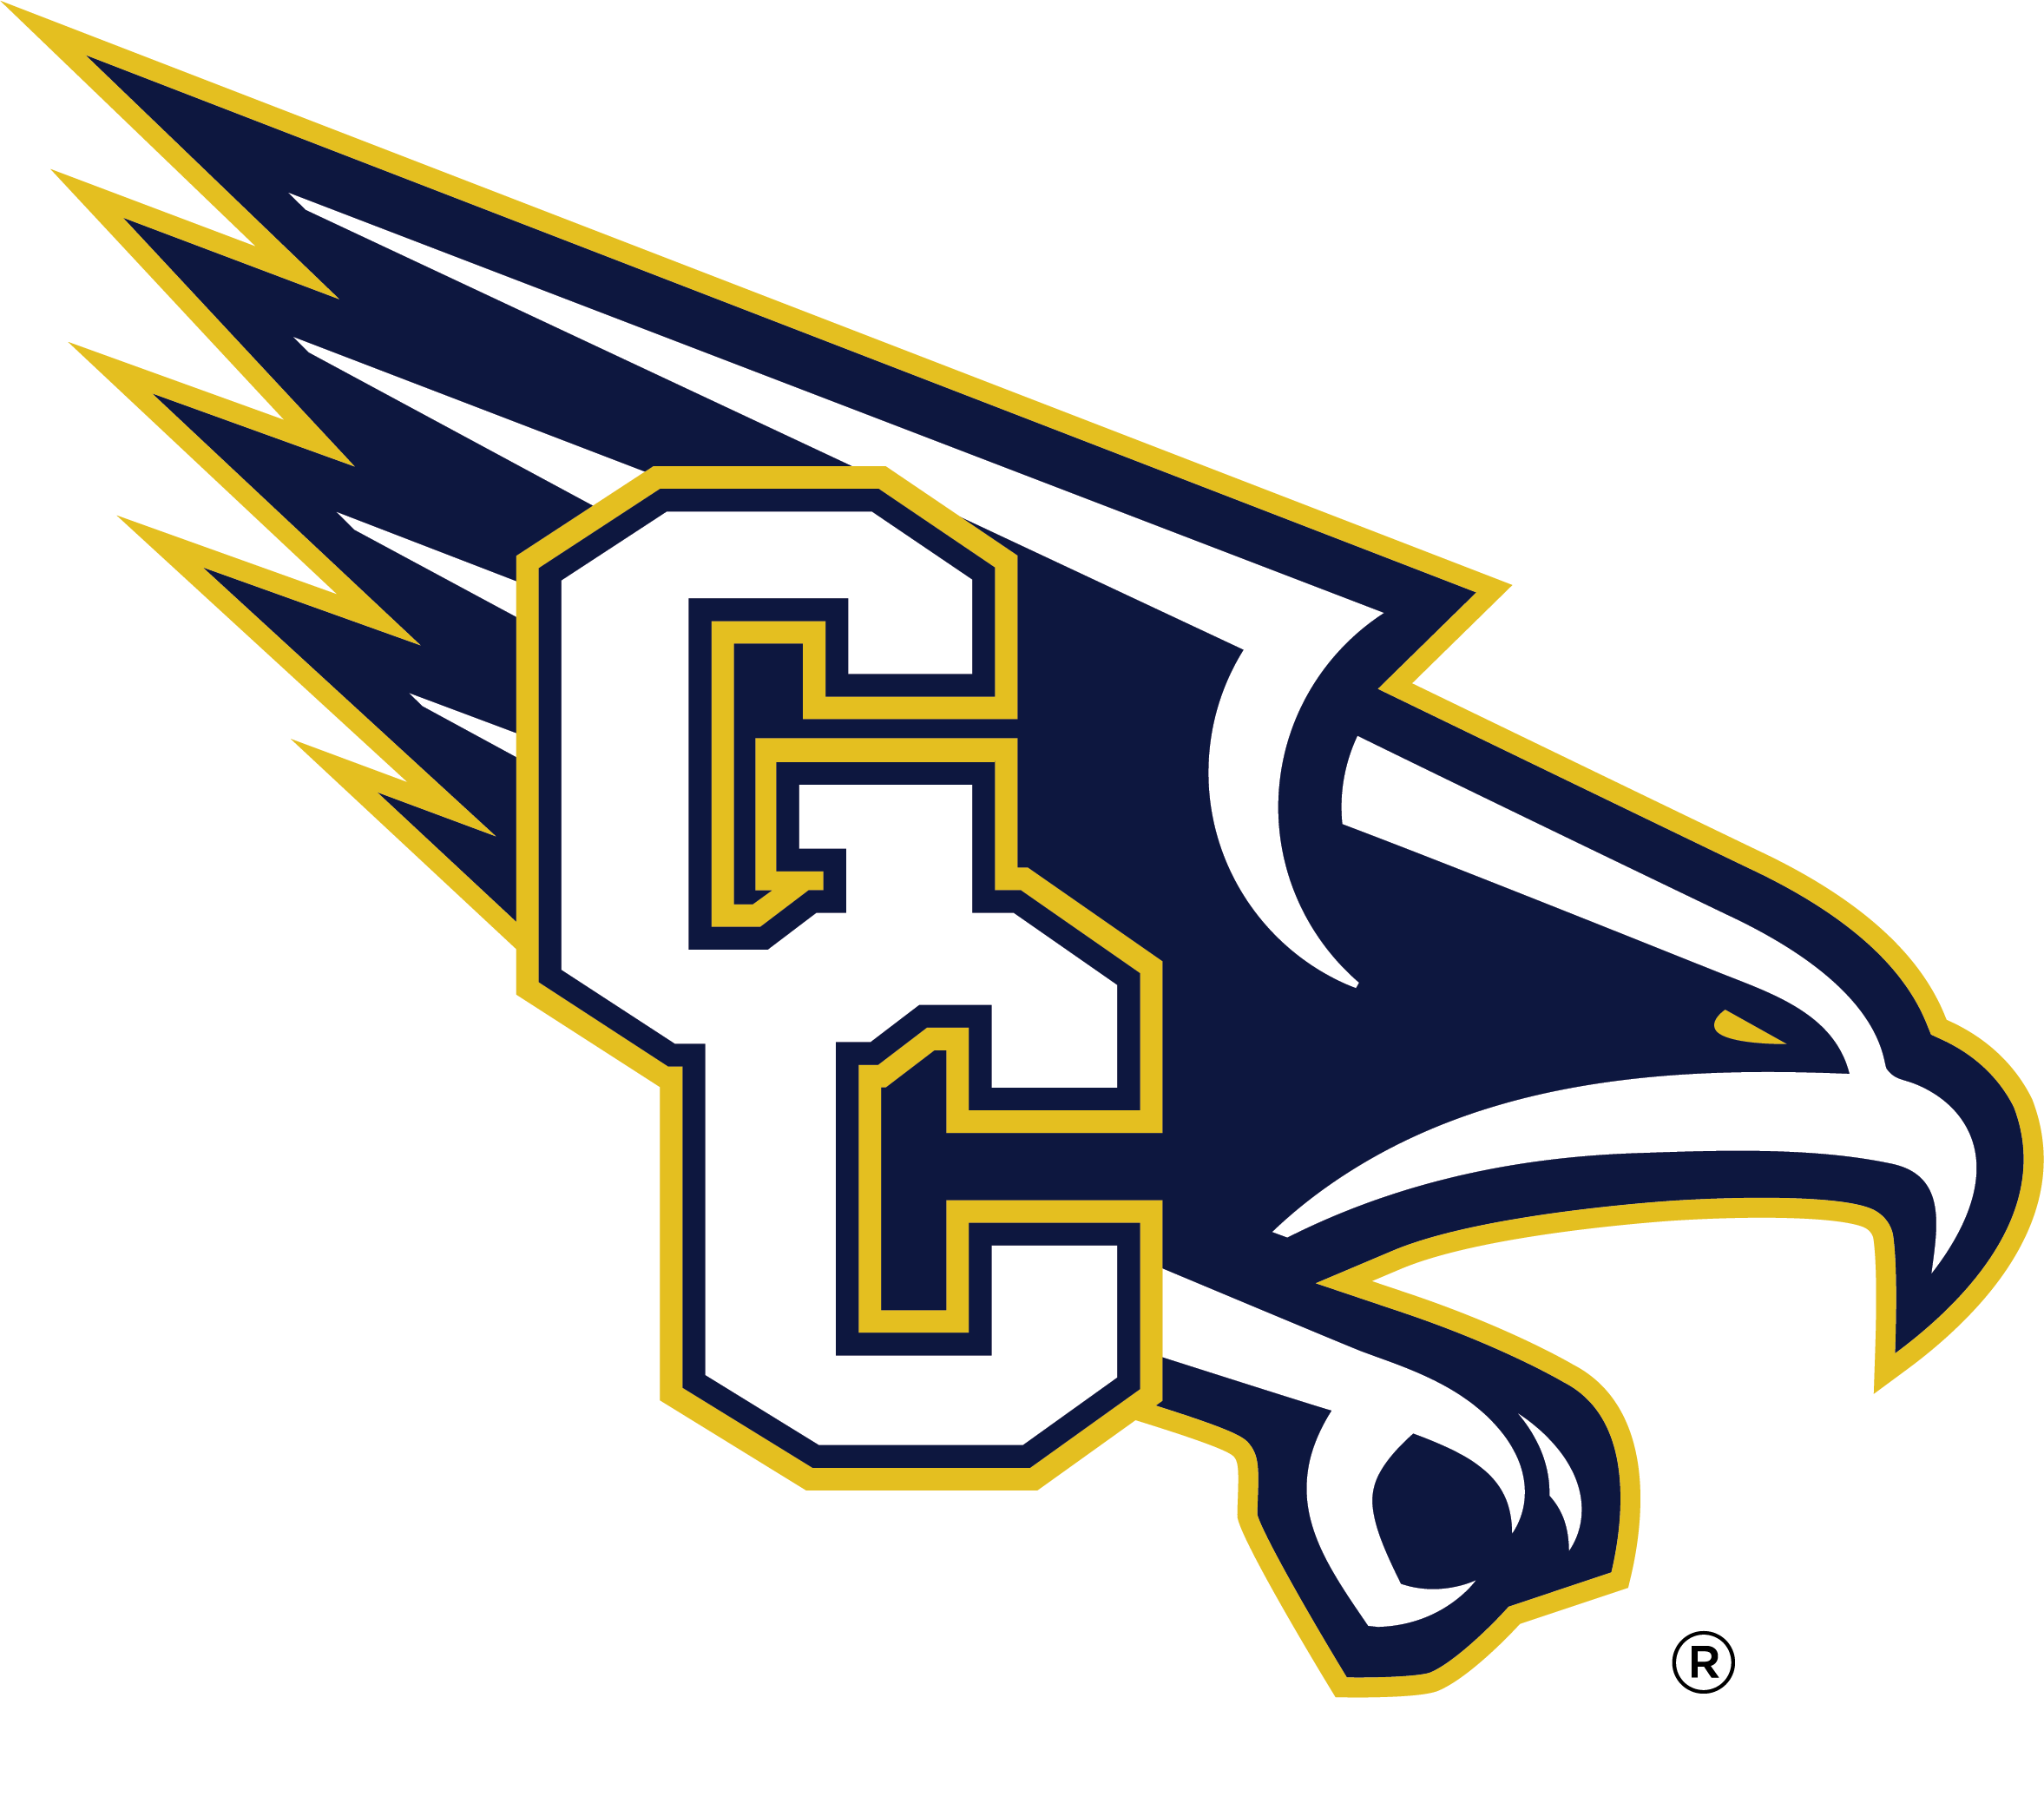 GC Falcon logo